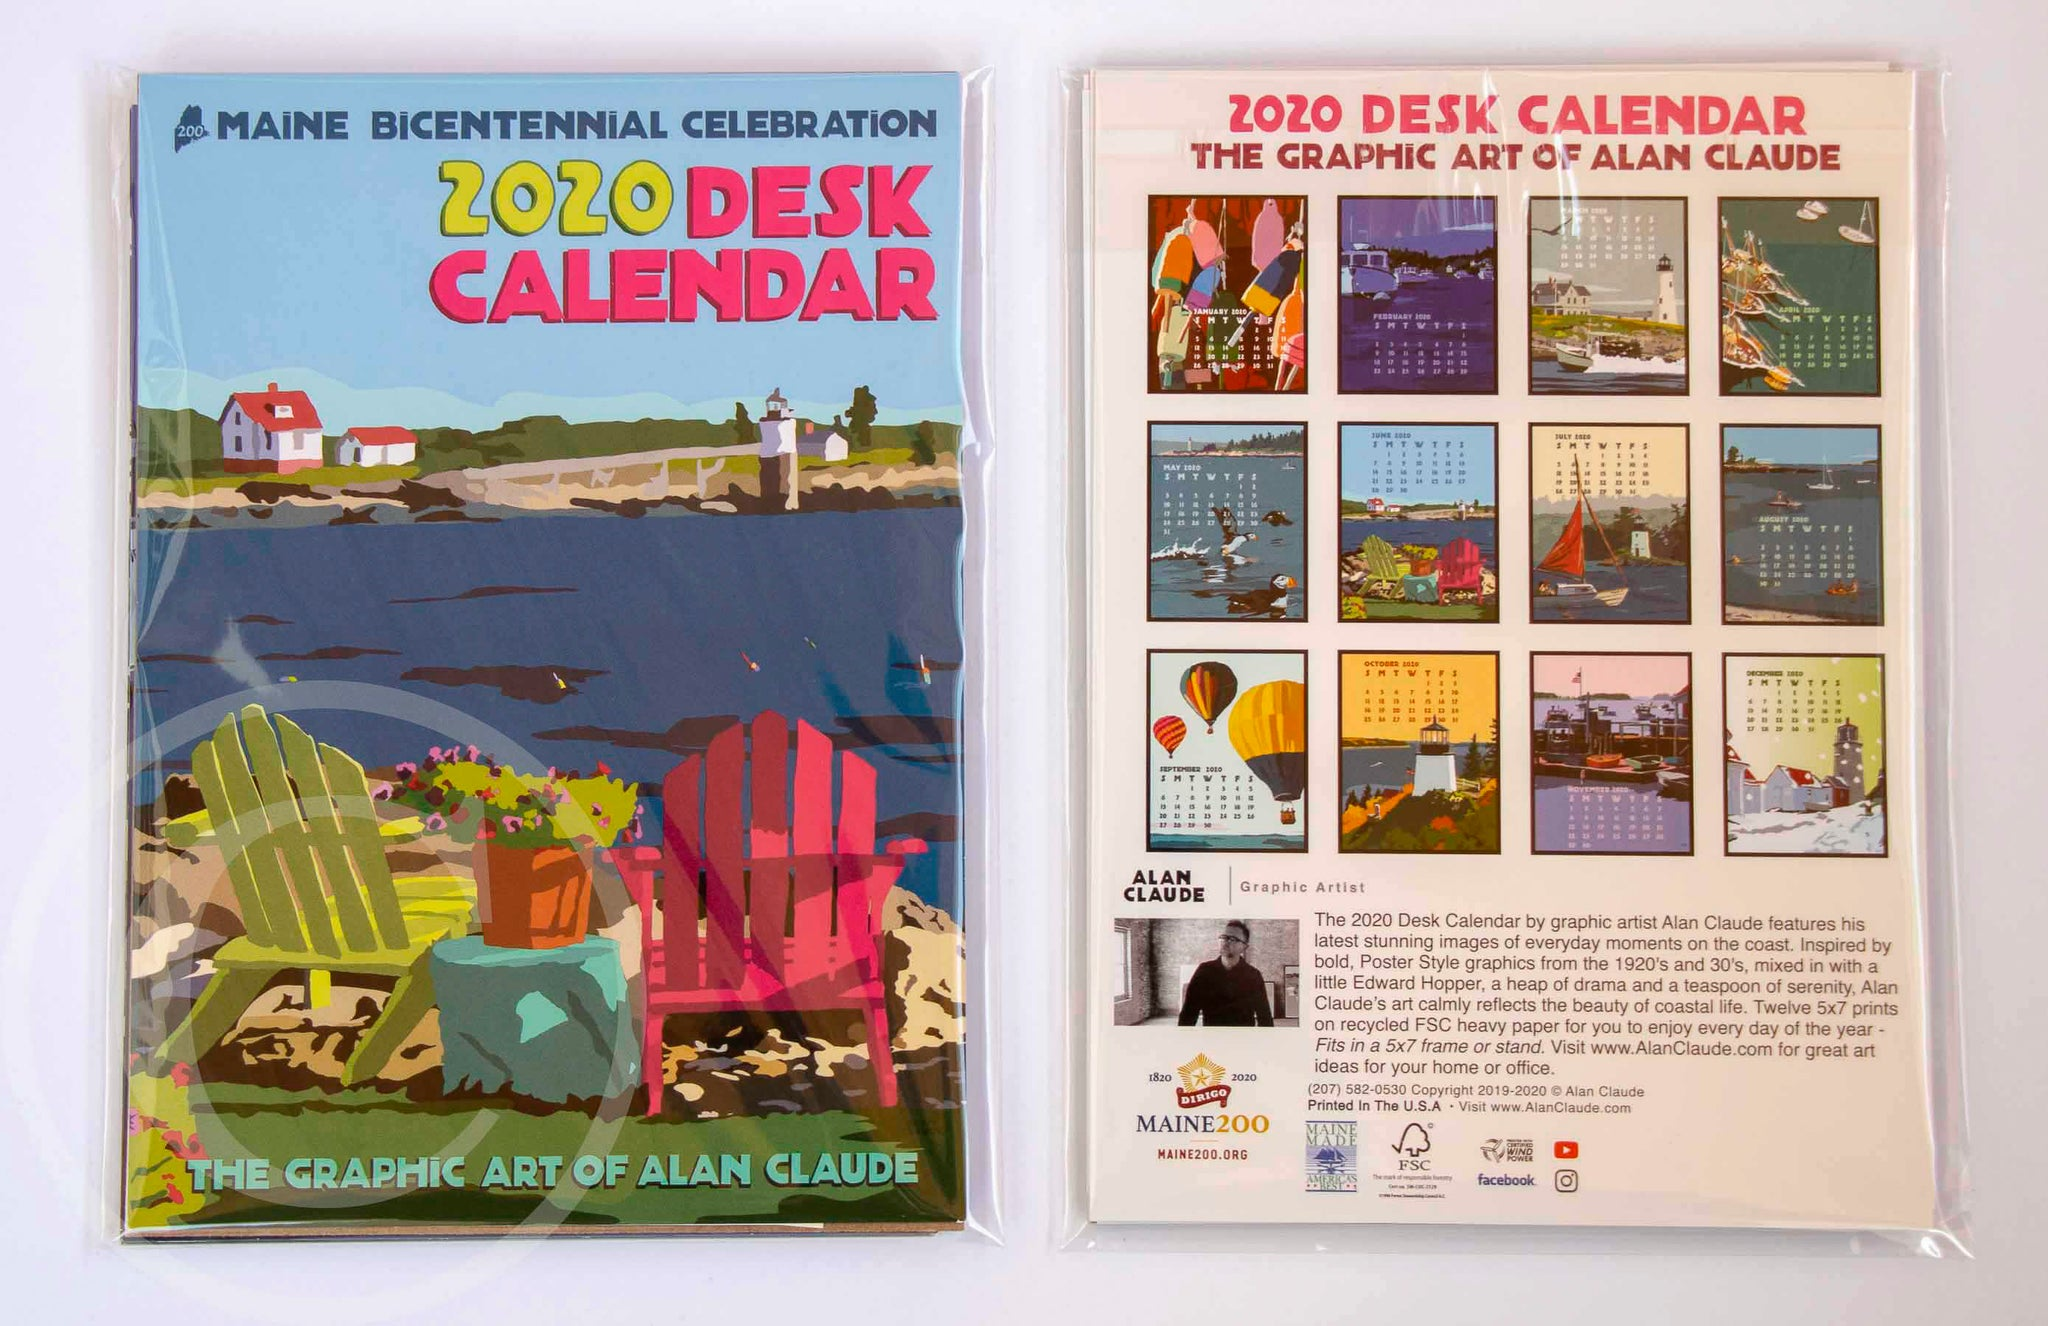 2020 DESK Art Calendar 5x7 retro vintage art desk style by Alan Claude